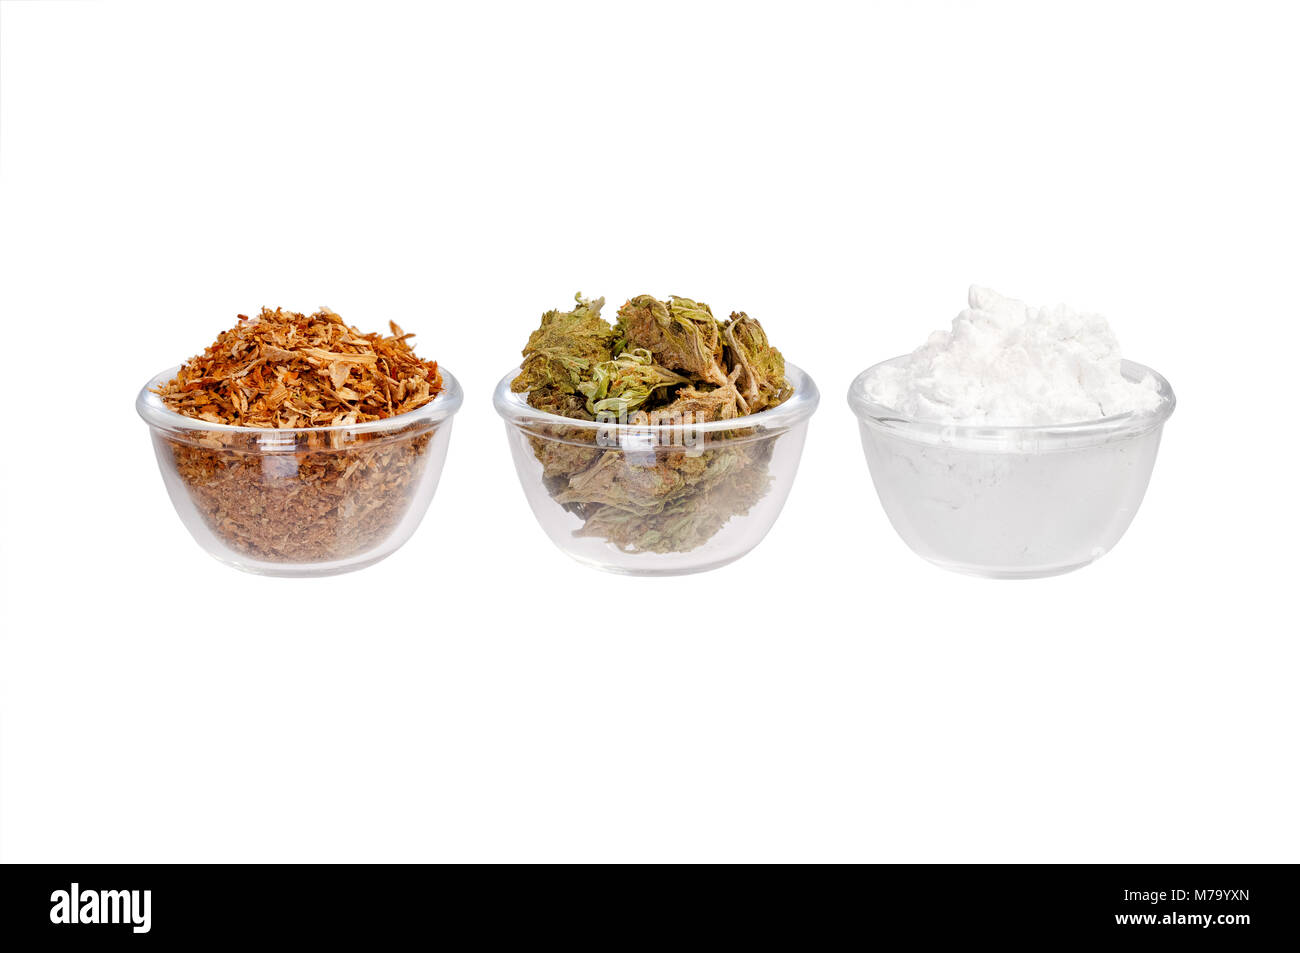 Three plates with modern drug on a white background - Stock Image